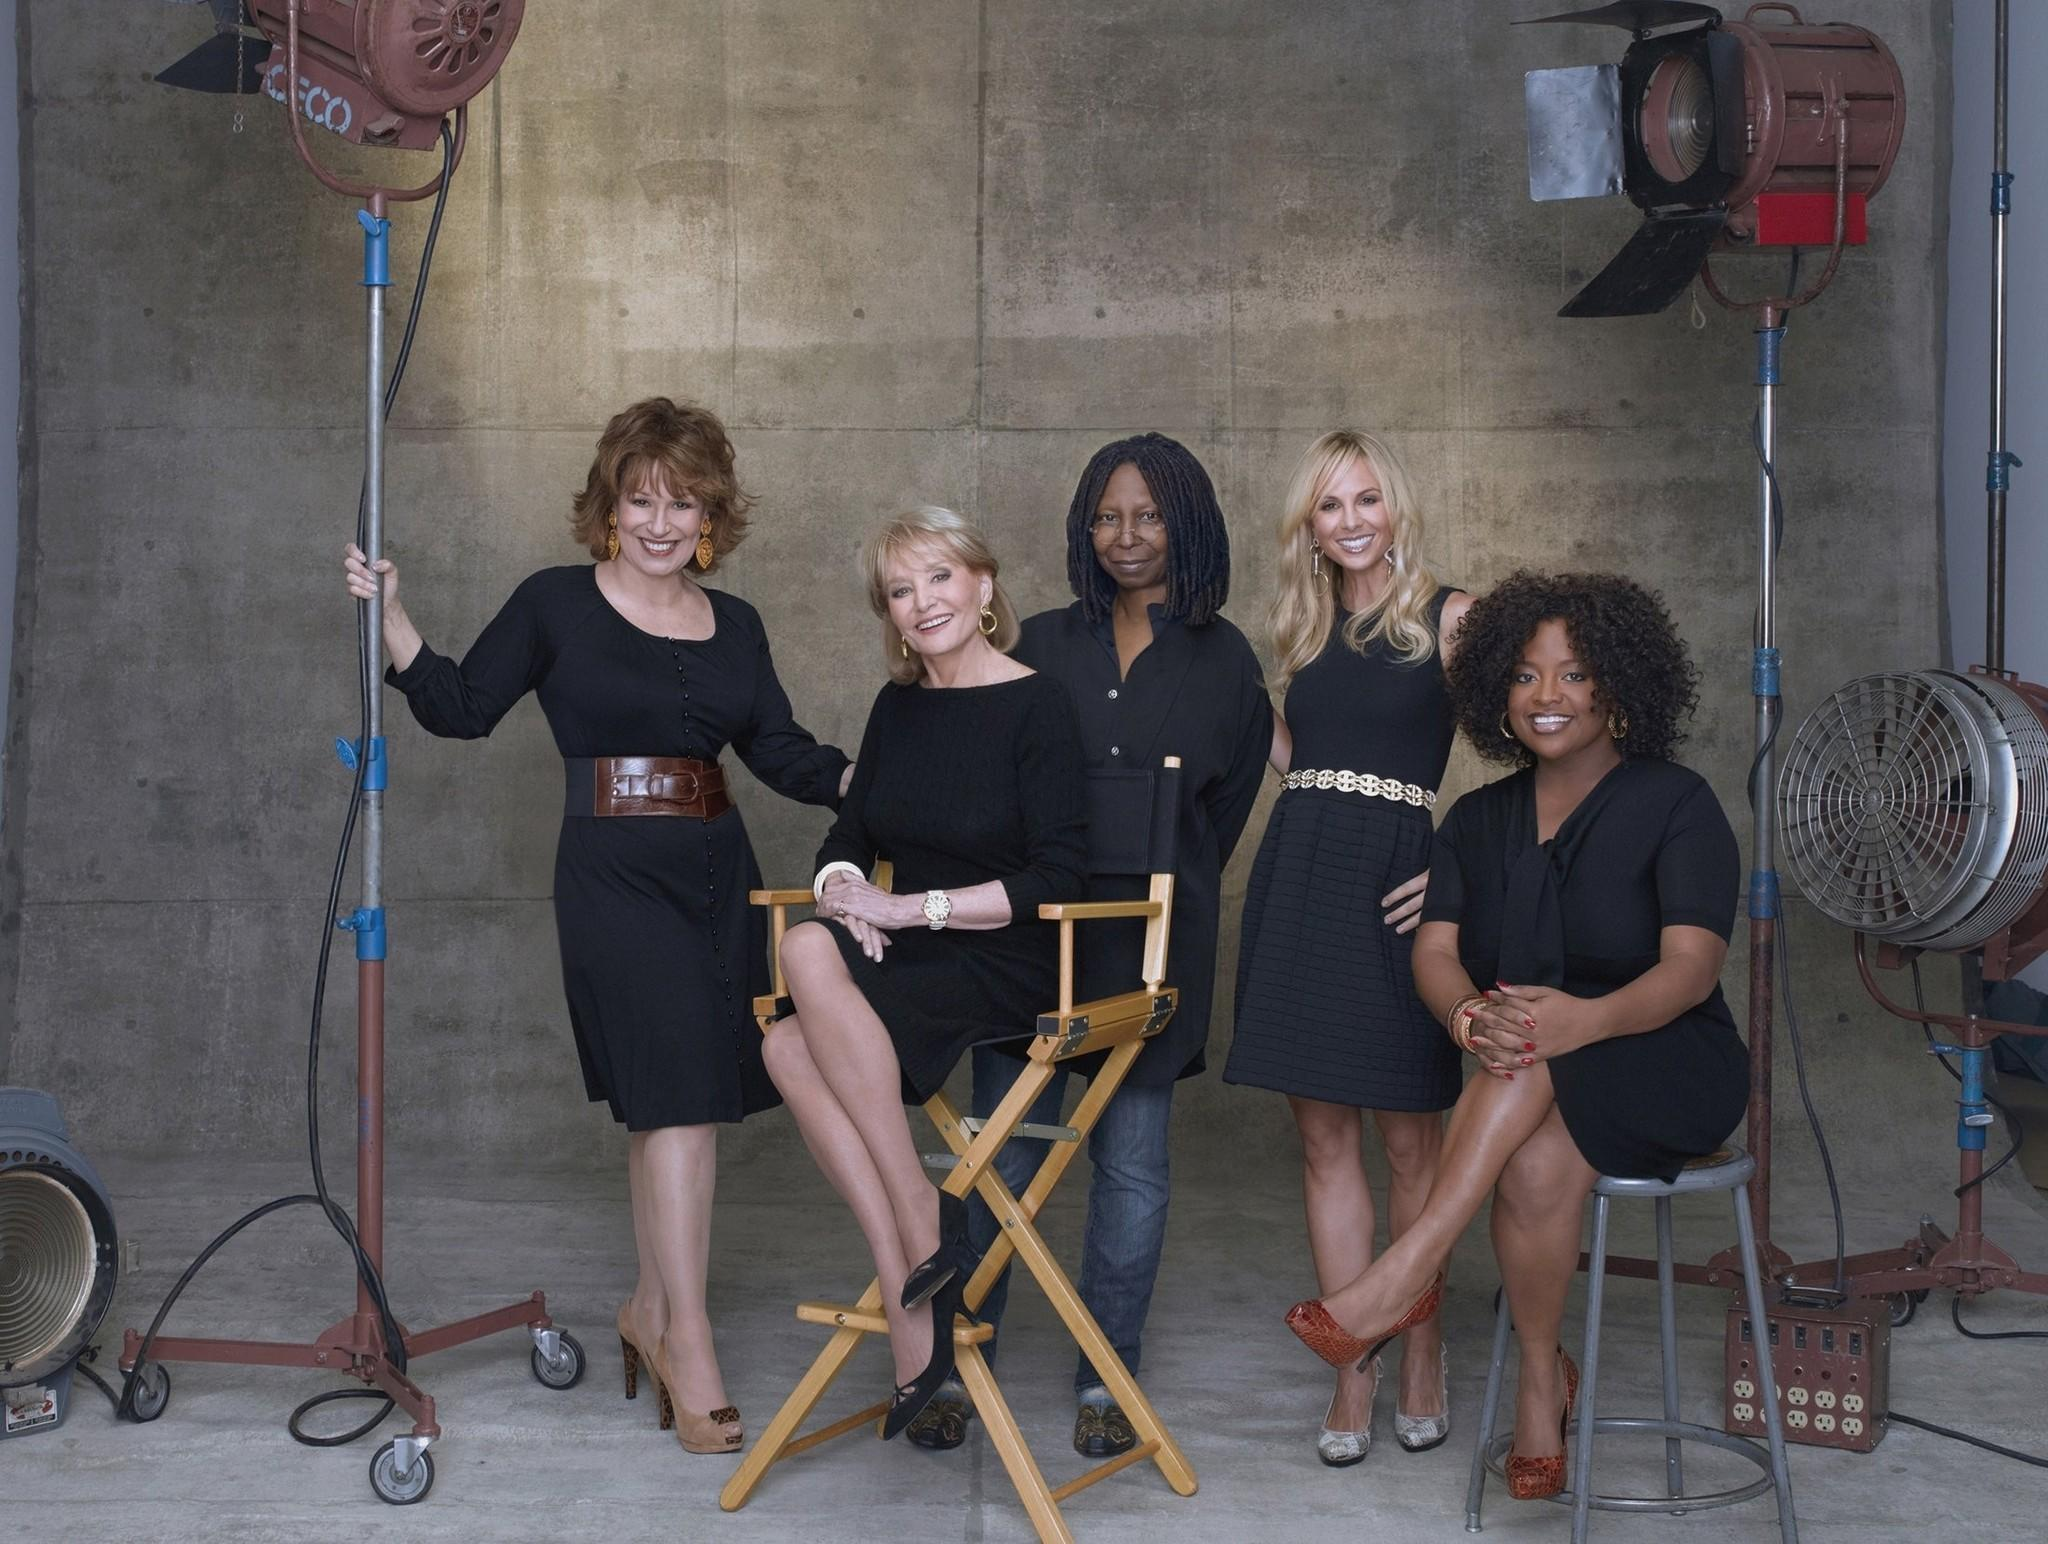 Barbara Walters, Whoopi Goldberg, Sherri Shepherd, Elisabeth Hasselbeck and Joy Behar from 'The View.'